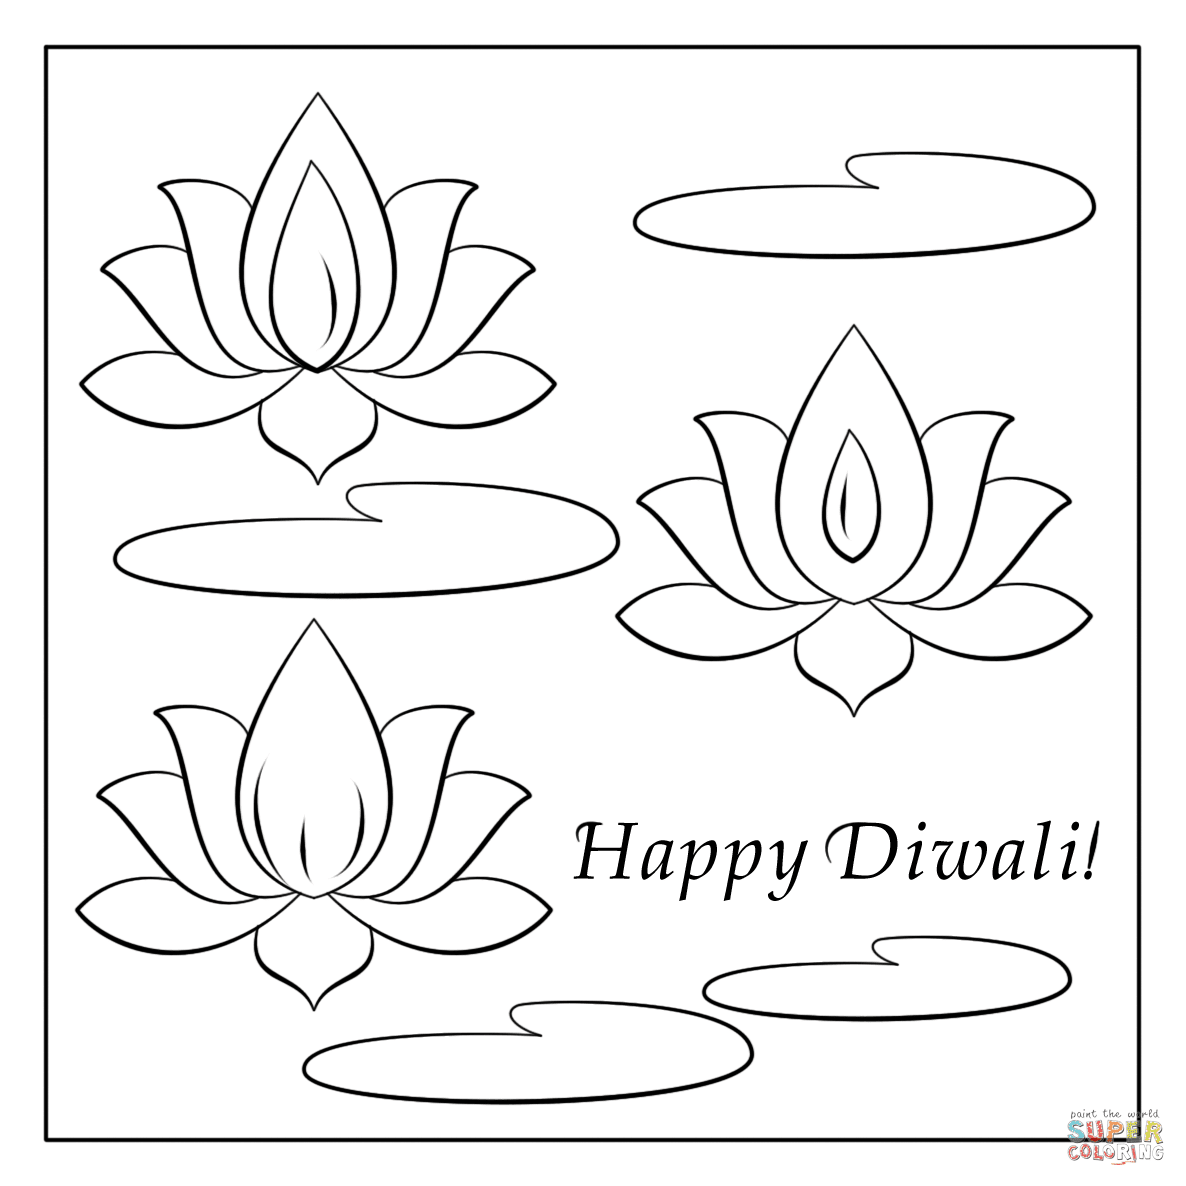 Diwali Coloring Pages - NEO Coloring